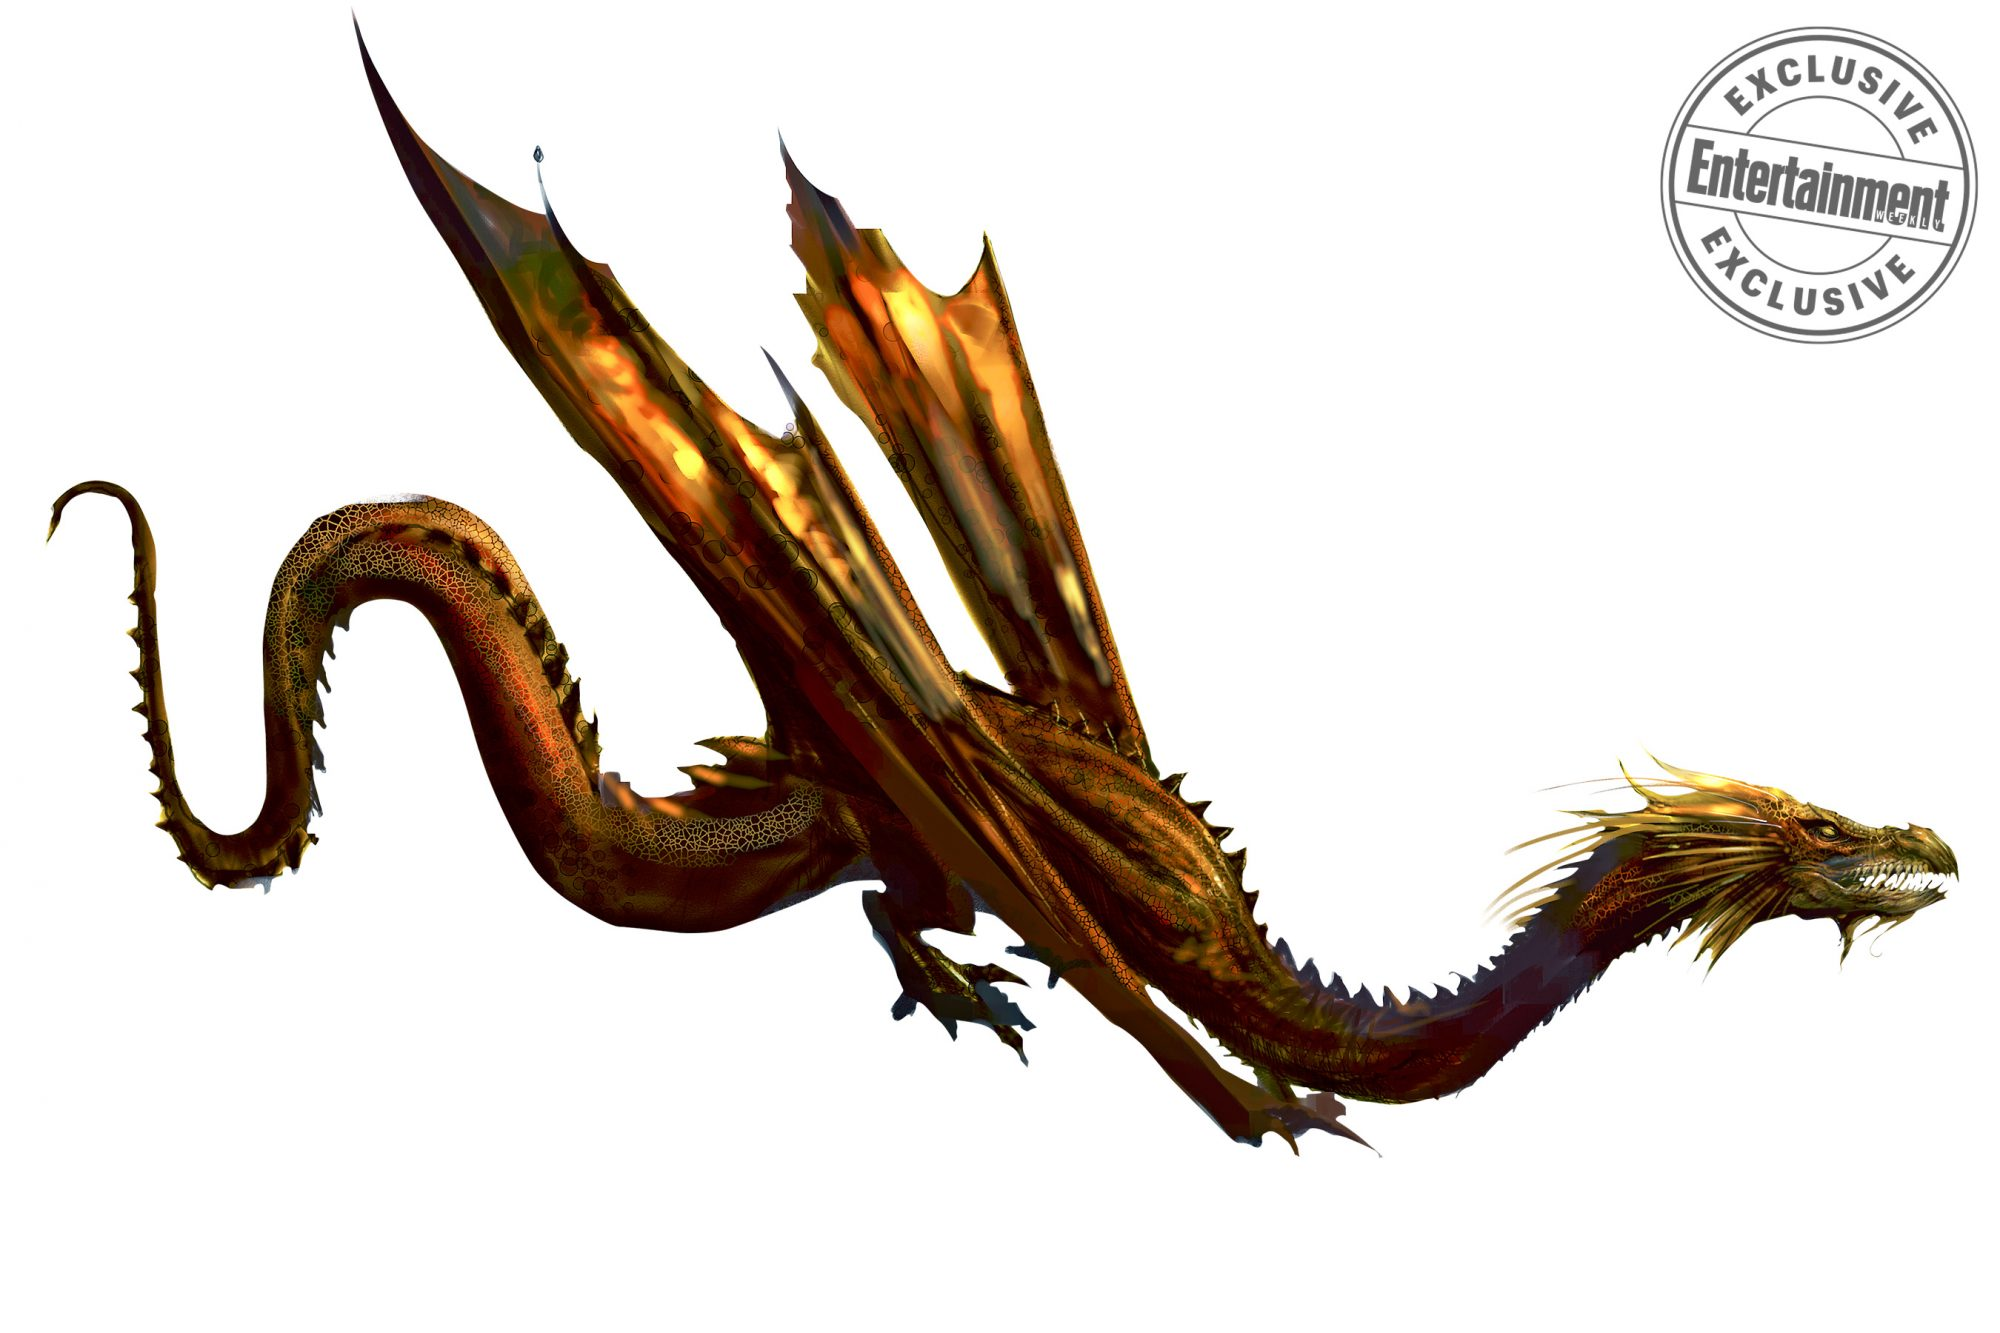 Harry Potter and the Goblet of FireChinese Fireball Dragon concept art